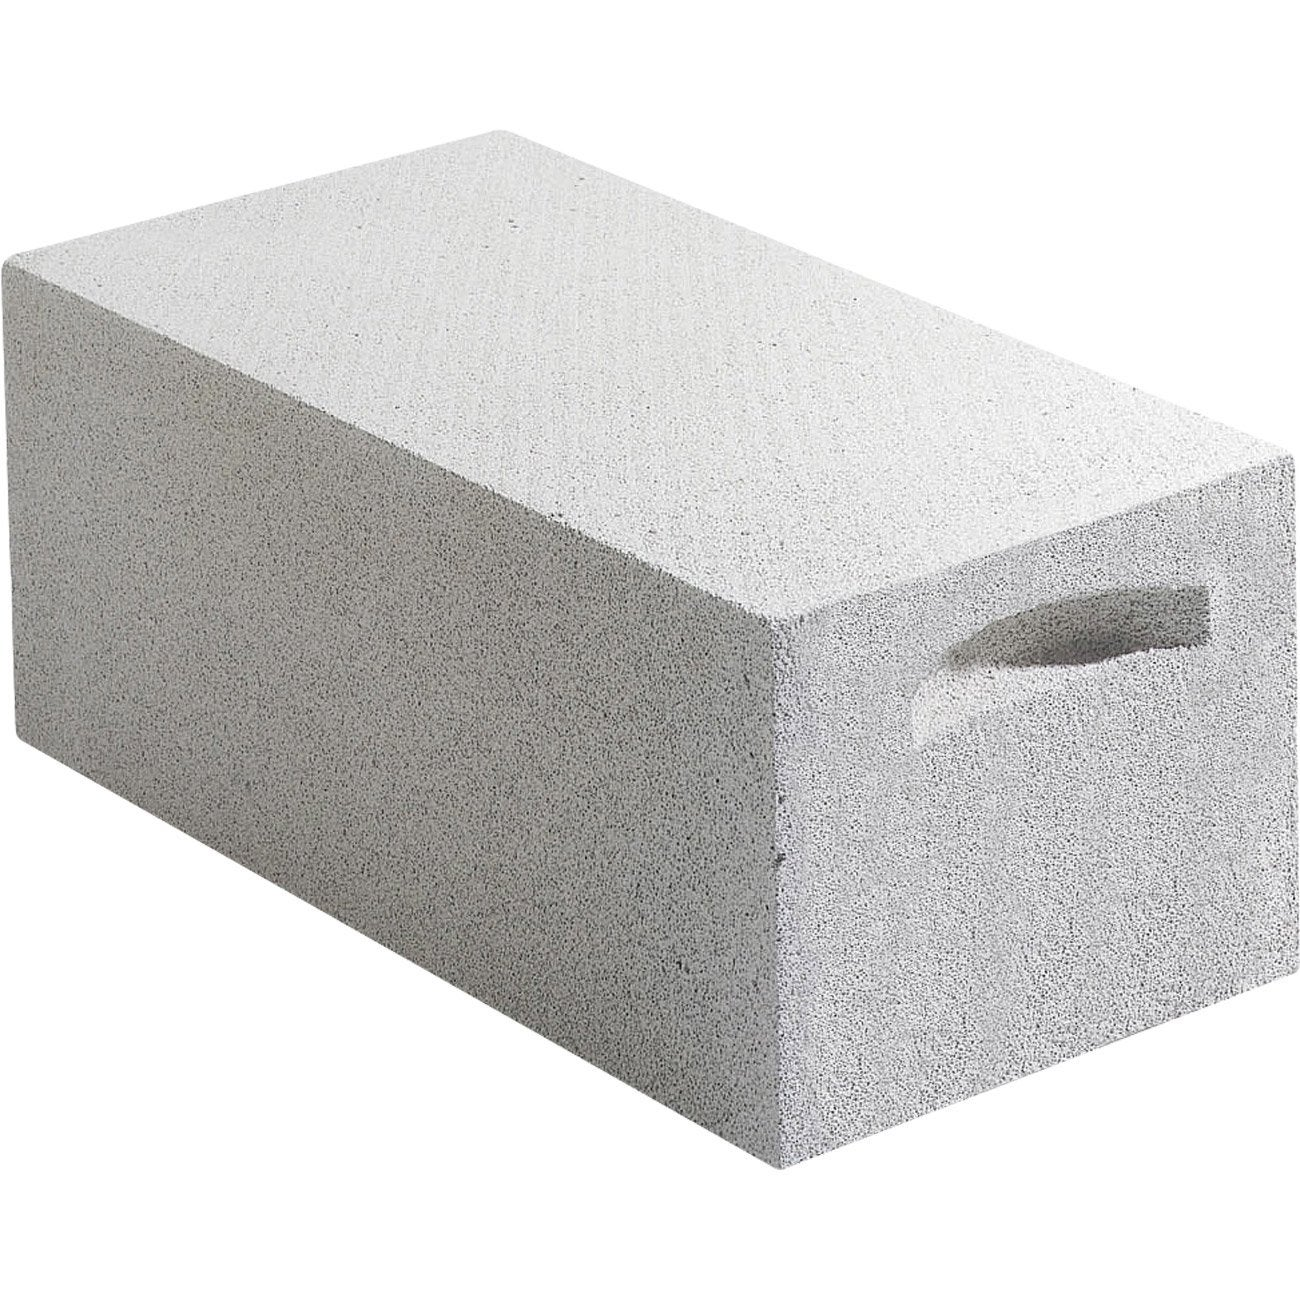 Bloc beton cellulaire for Garage bloc beton